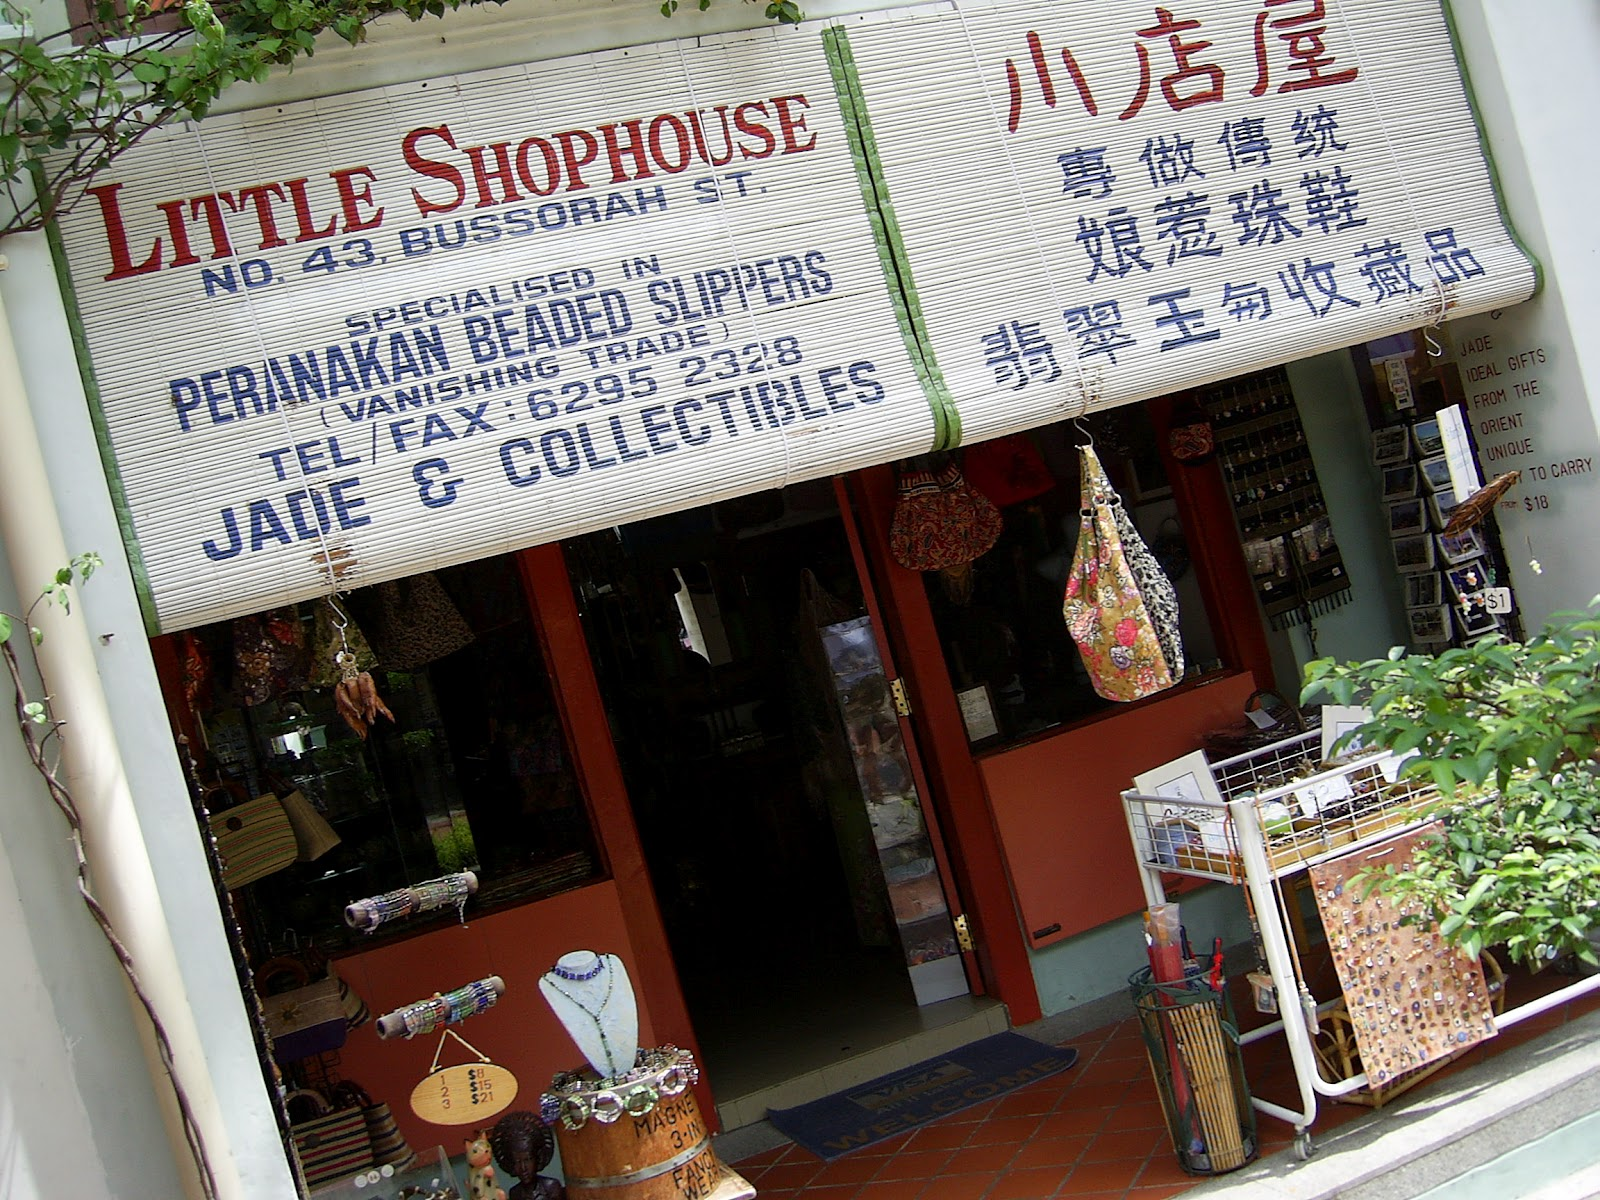 「little shop house singapore」の画像検索結果